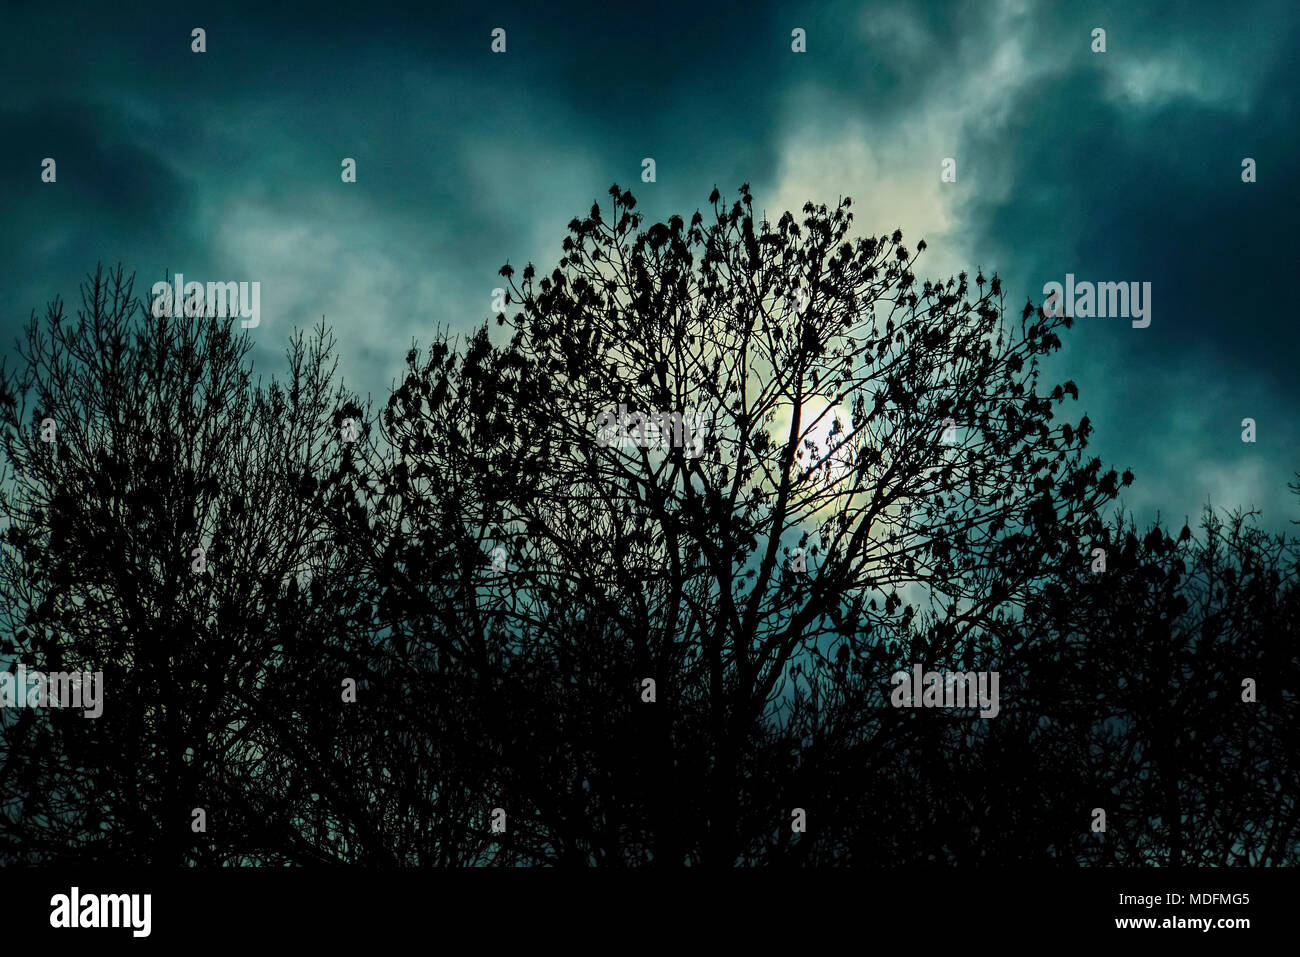 nightmarish forest scene - Stock Image